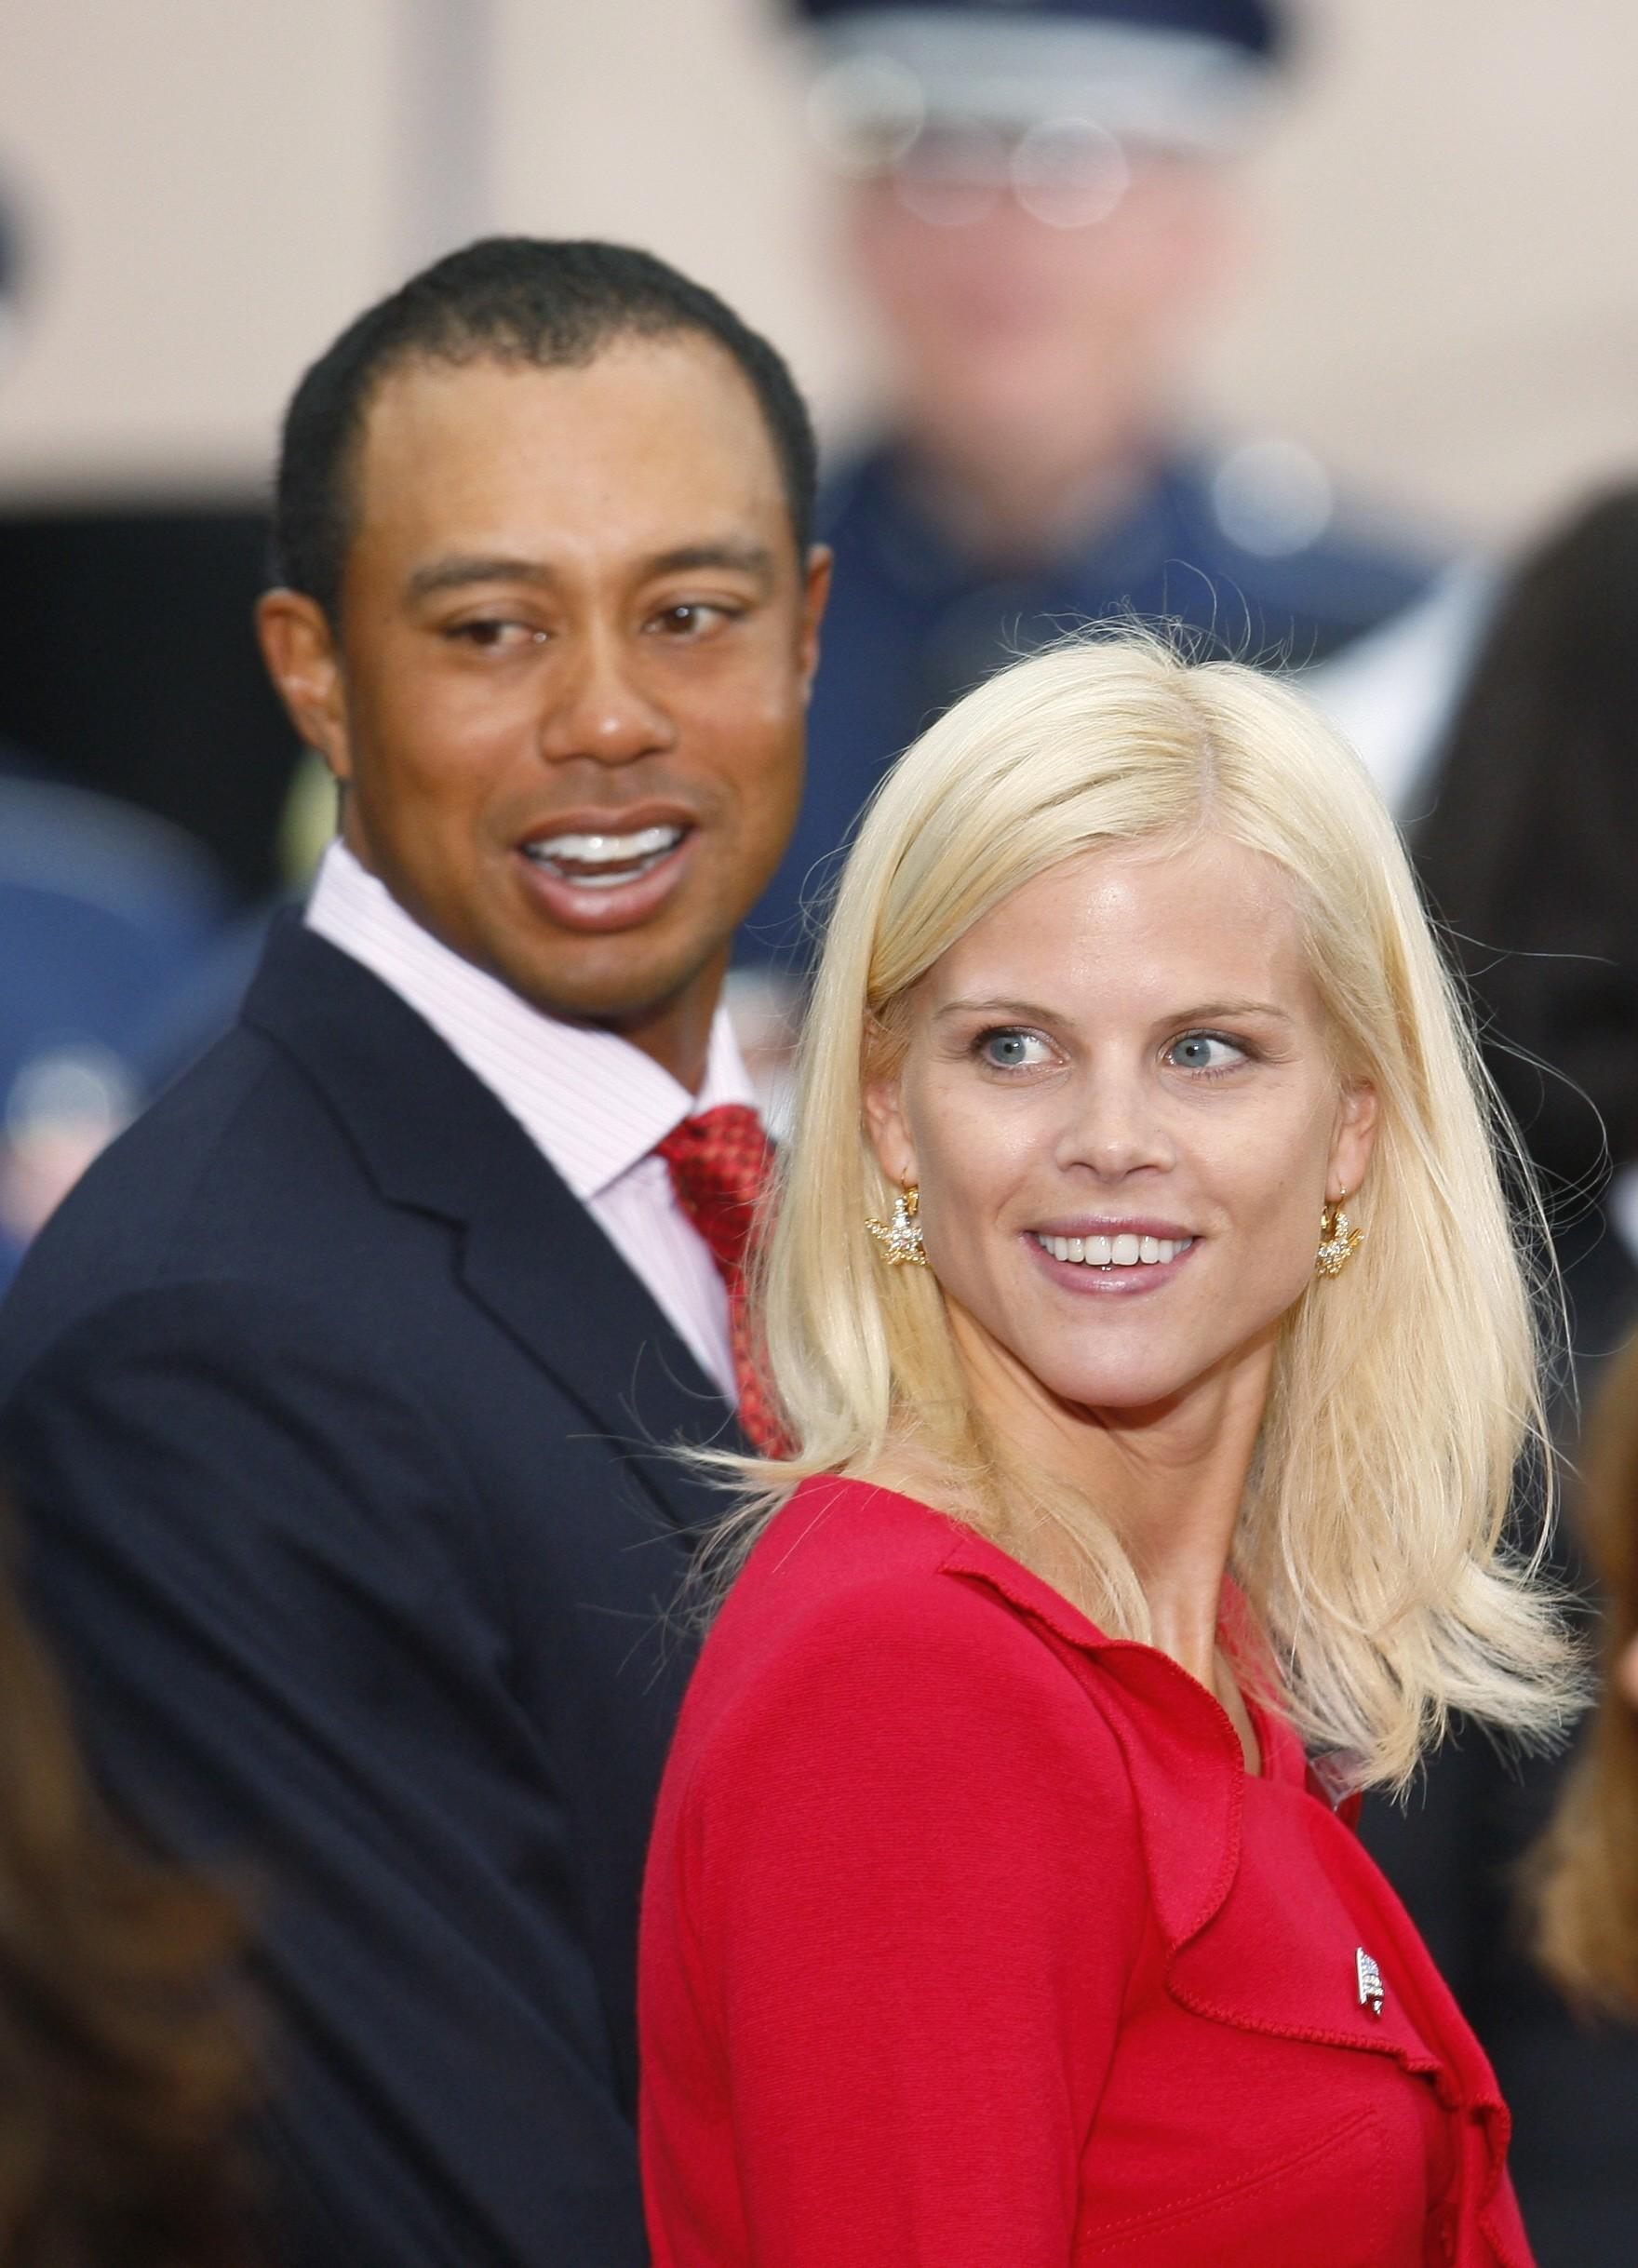 Tiger Woods and ex-wife Elin Nordegren split in 2010